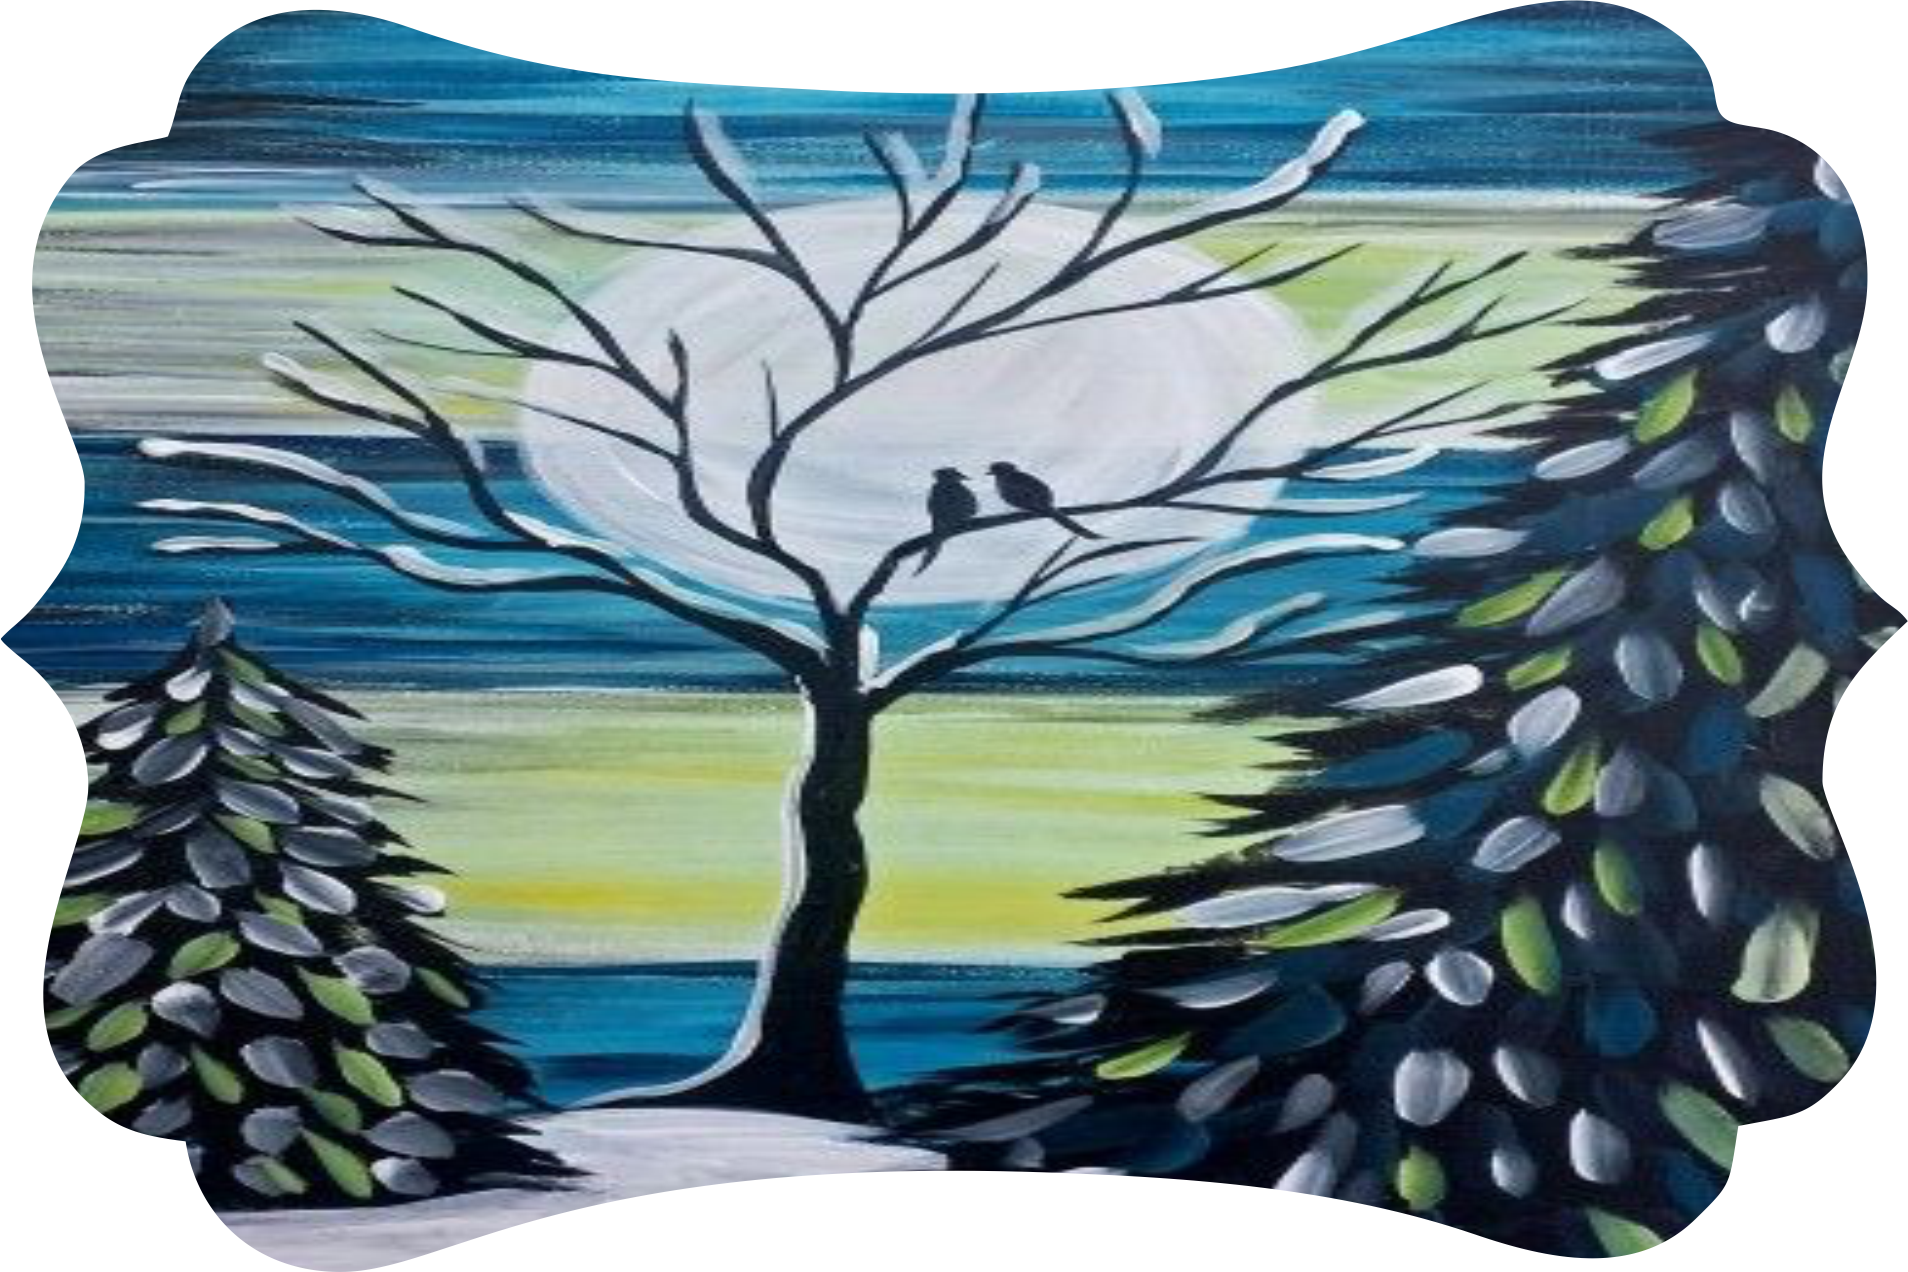 Colony drawing winter. Sku rs rectangle sign